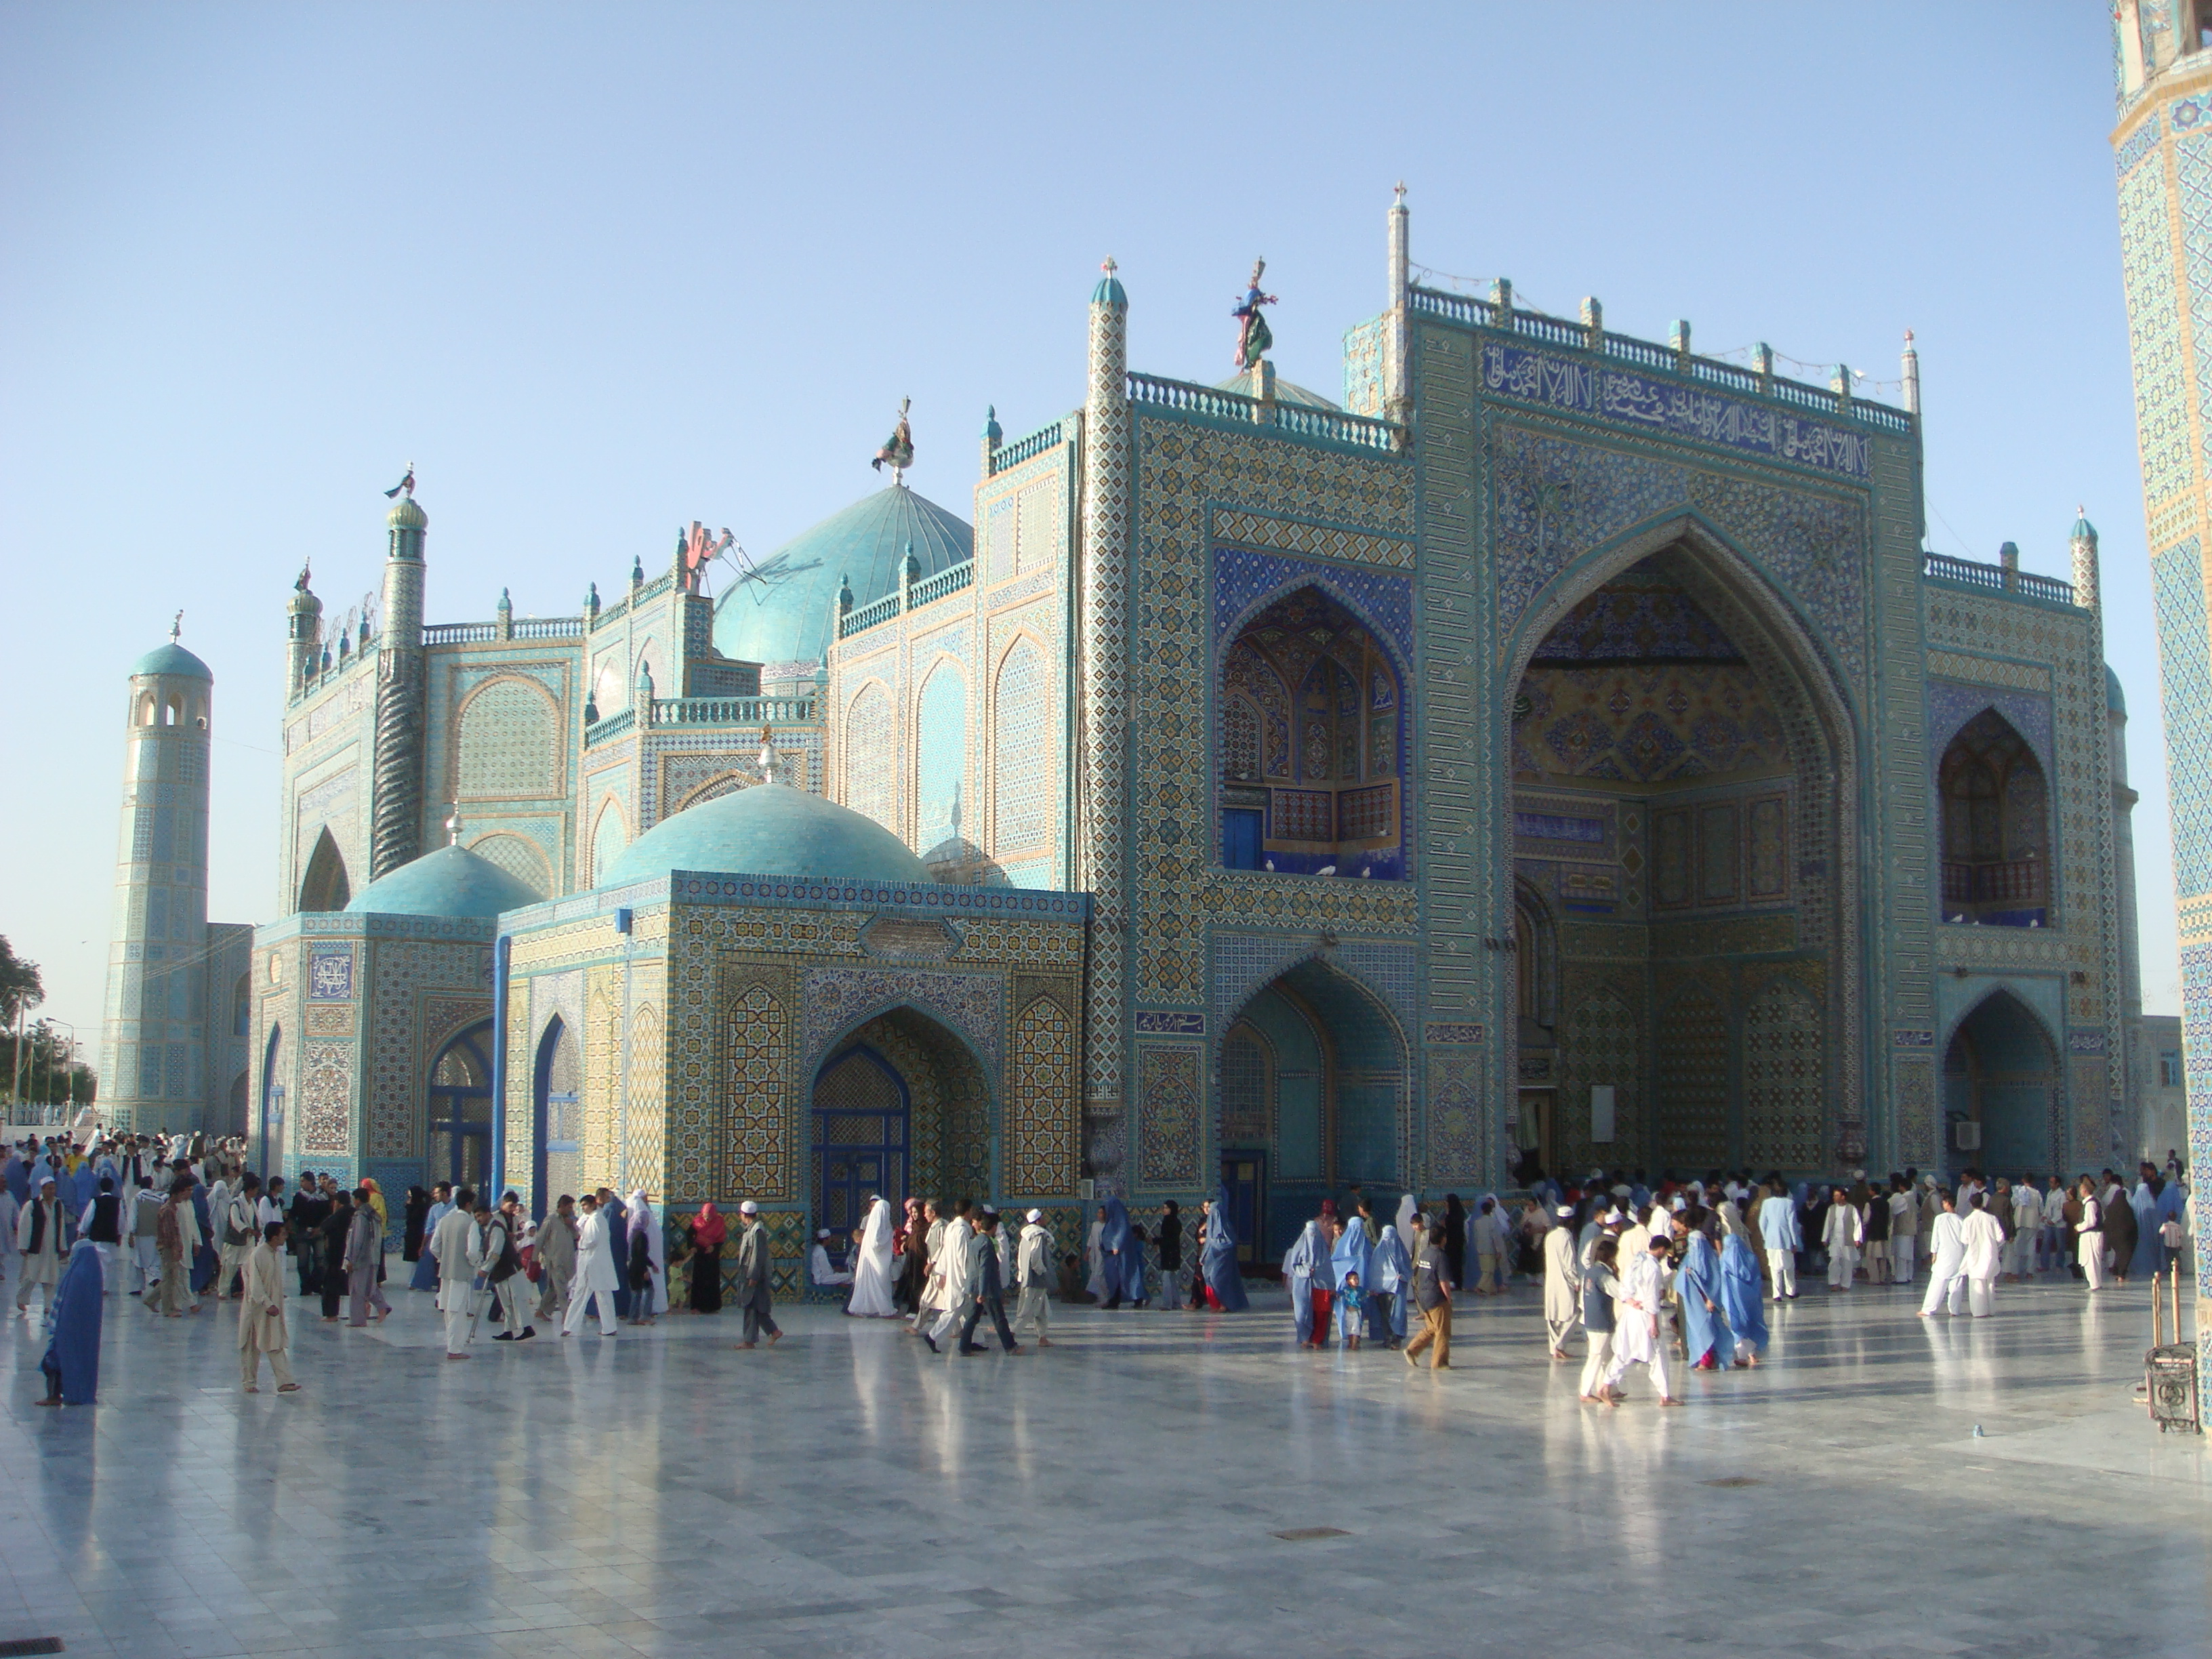 Whores in Mazar-e Sharif